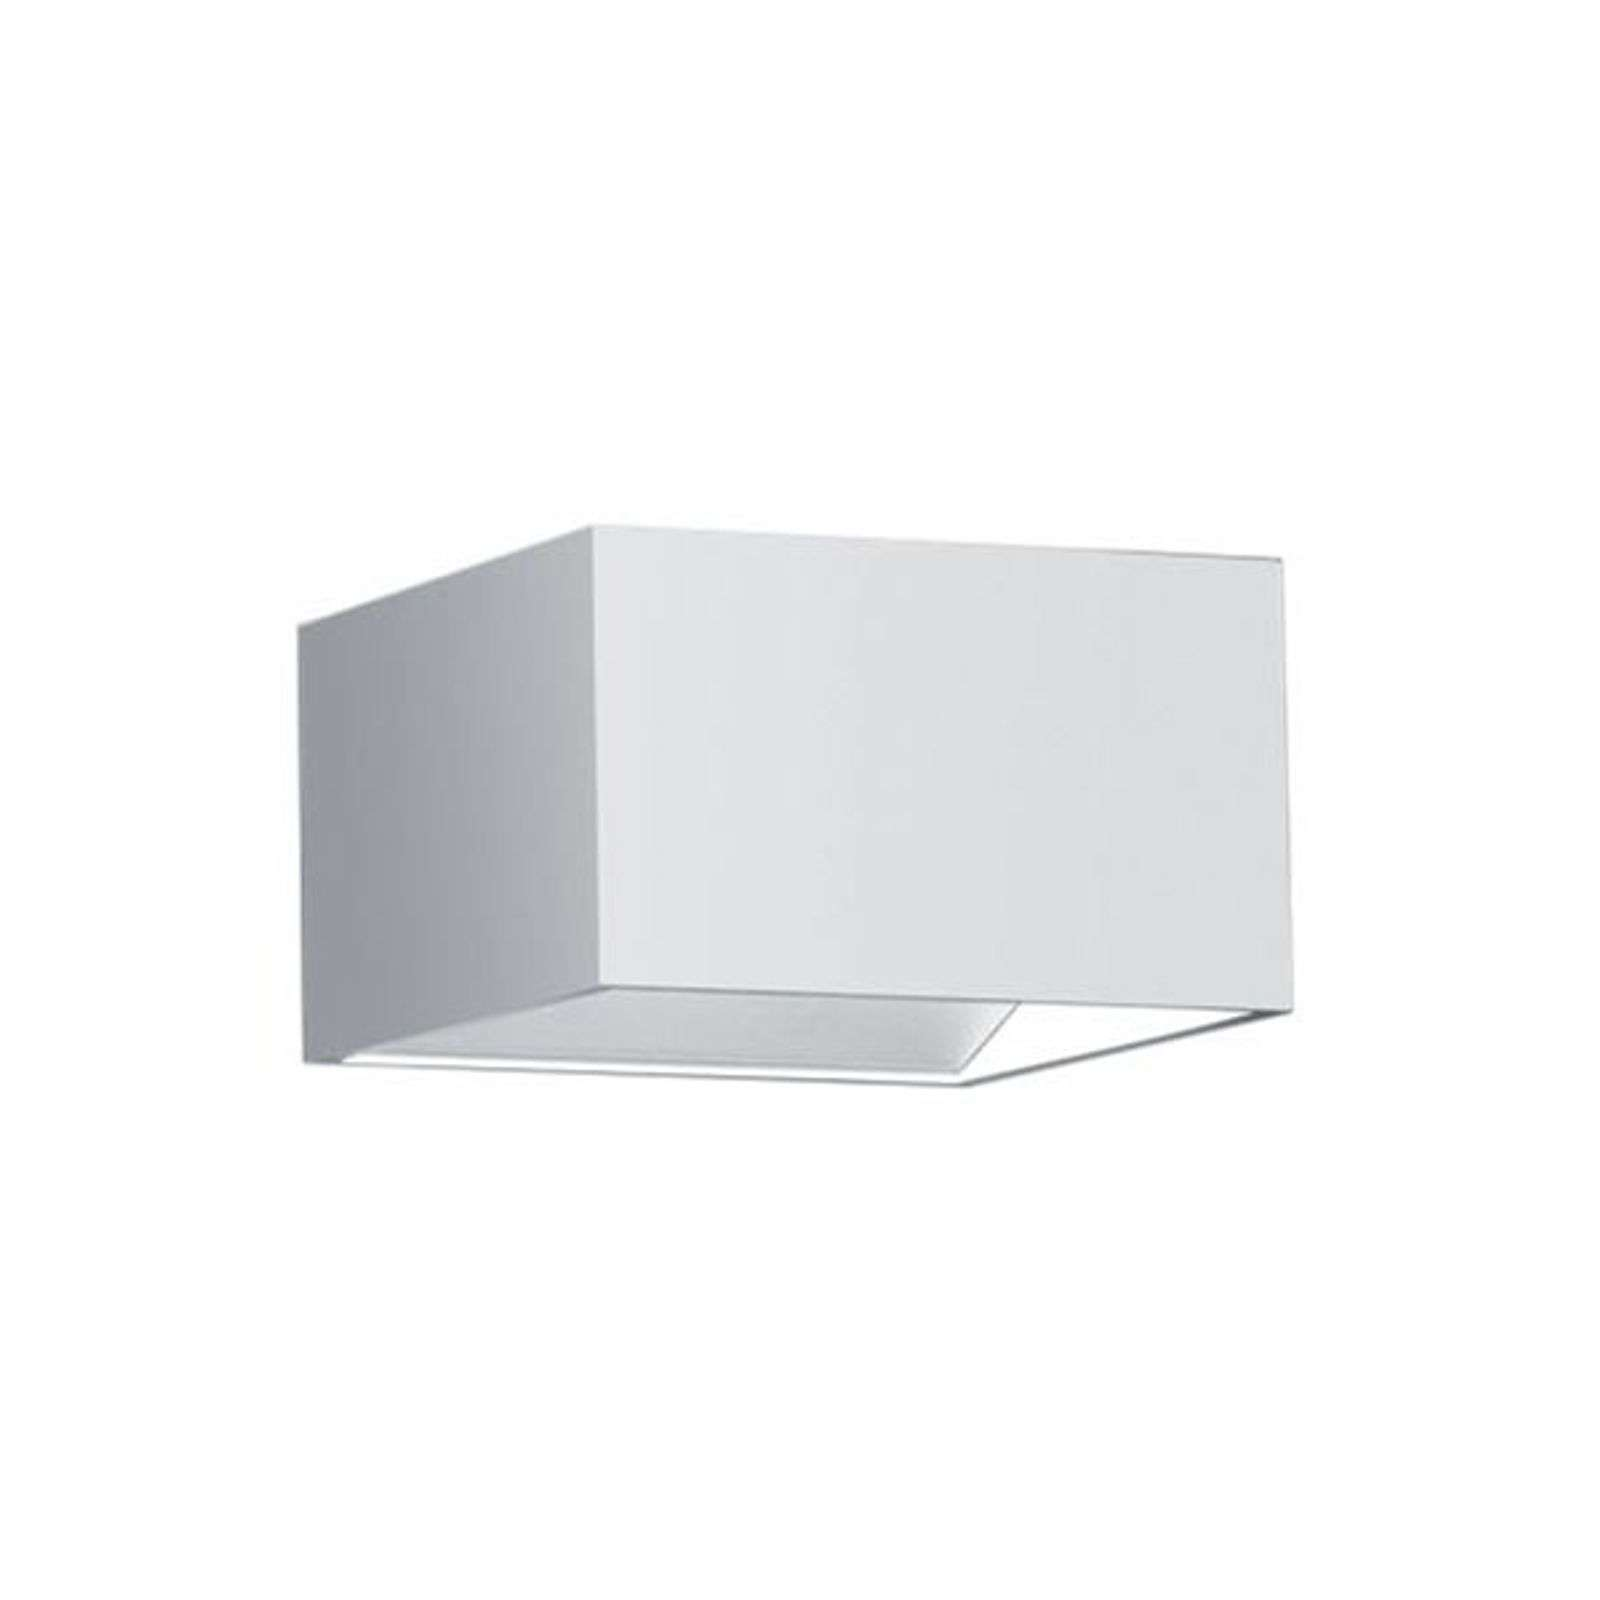 Applique a LED Cube bianco